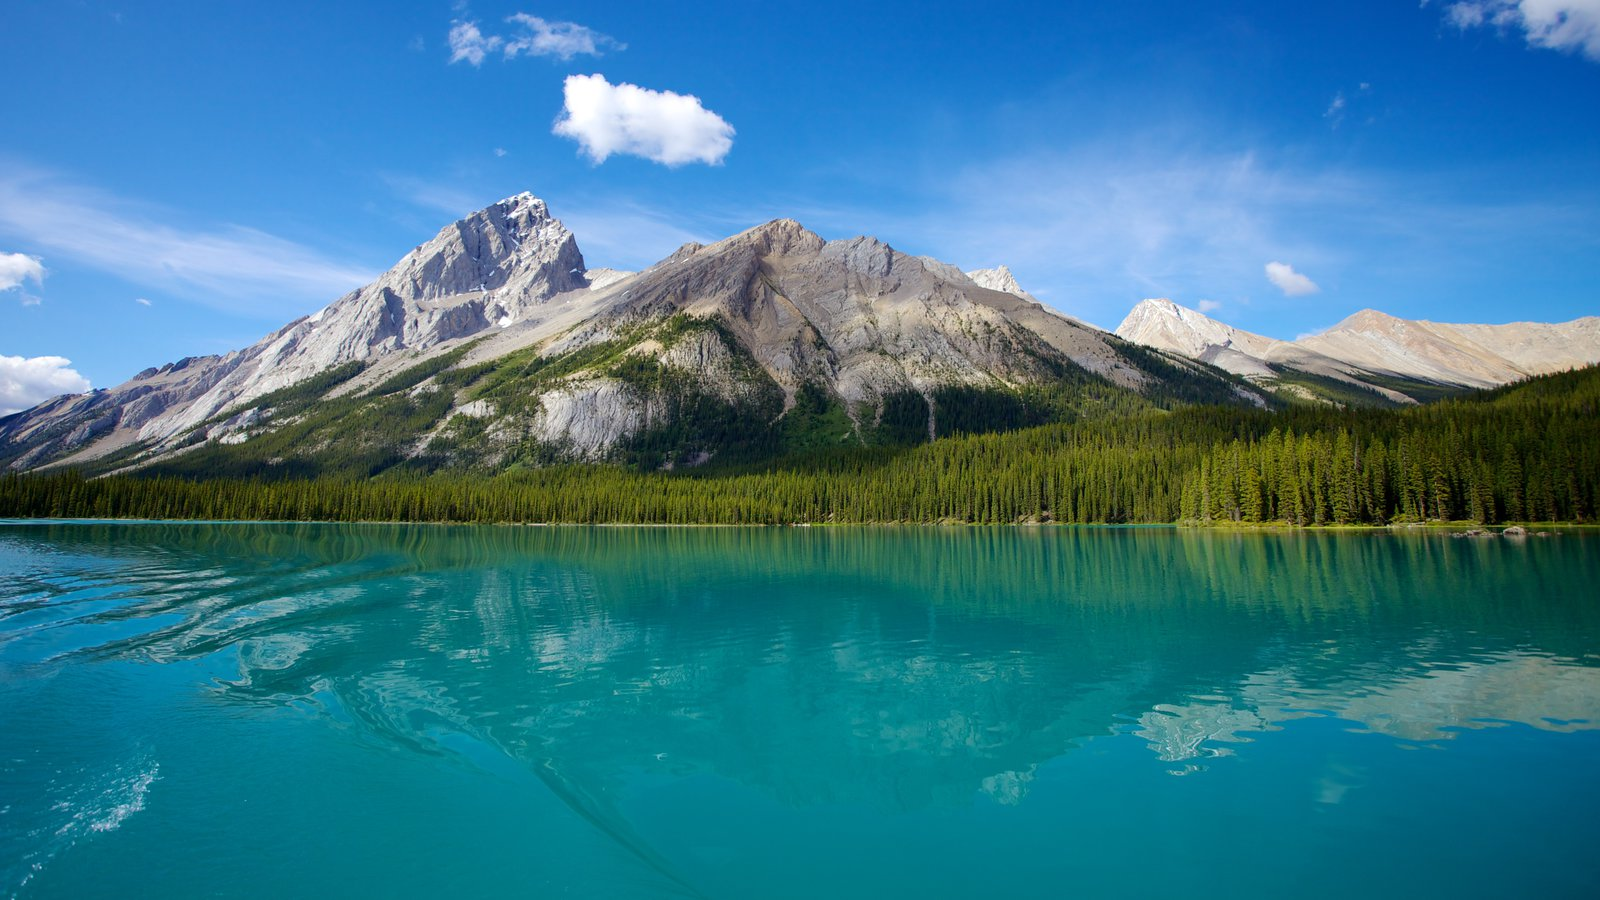 Maligne Lake which includes mountains and landscape views